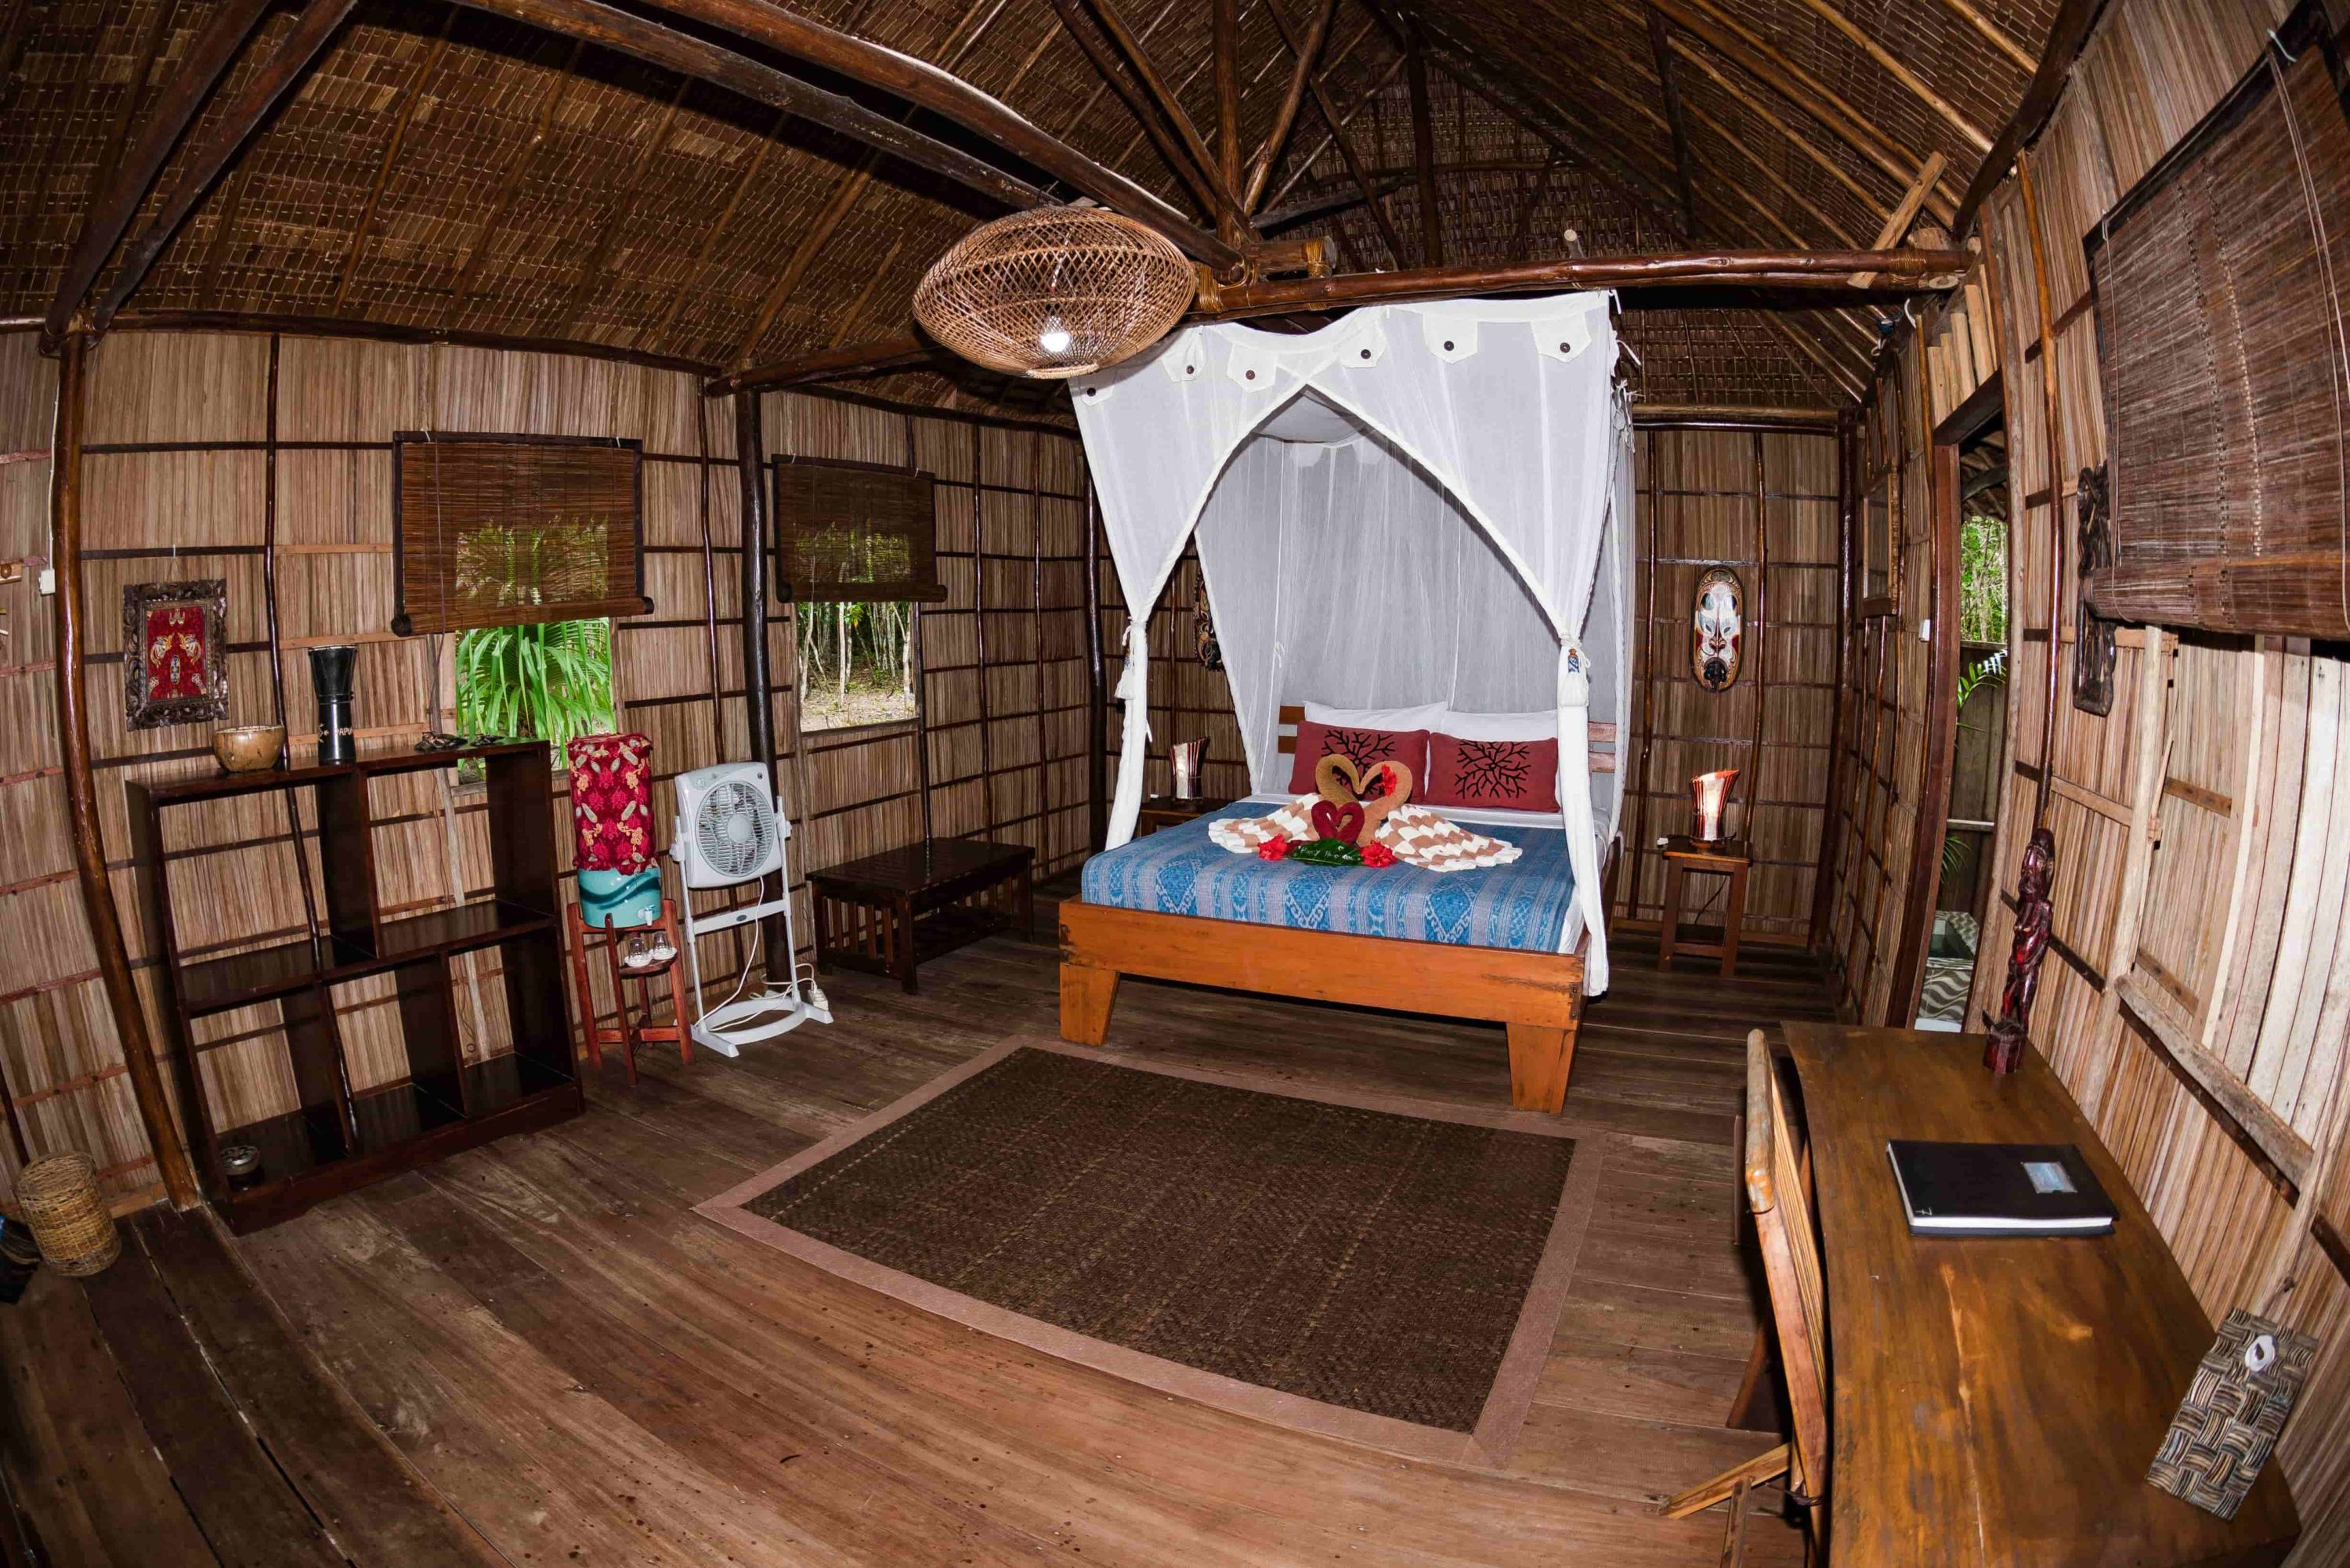 Raja Ampat Accommodations - Deluxe cottage